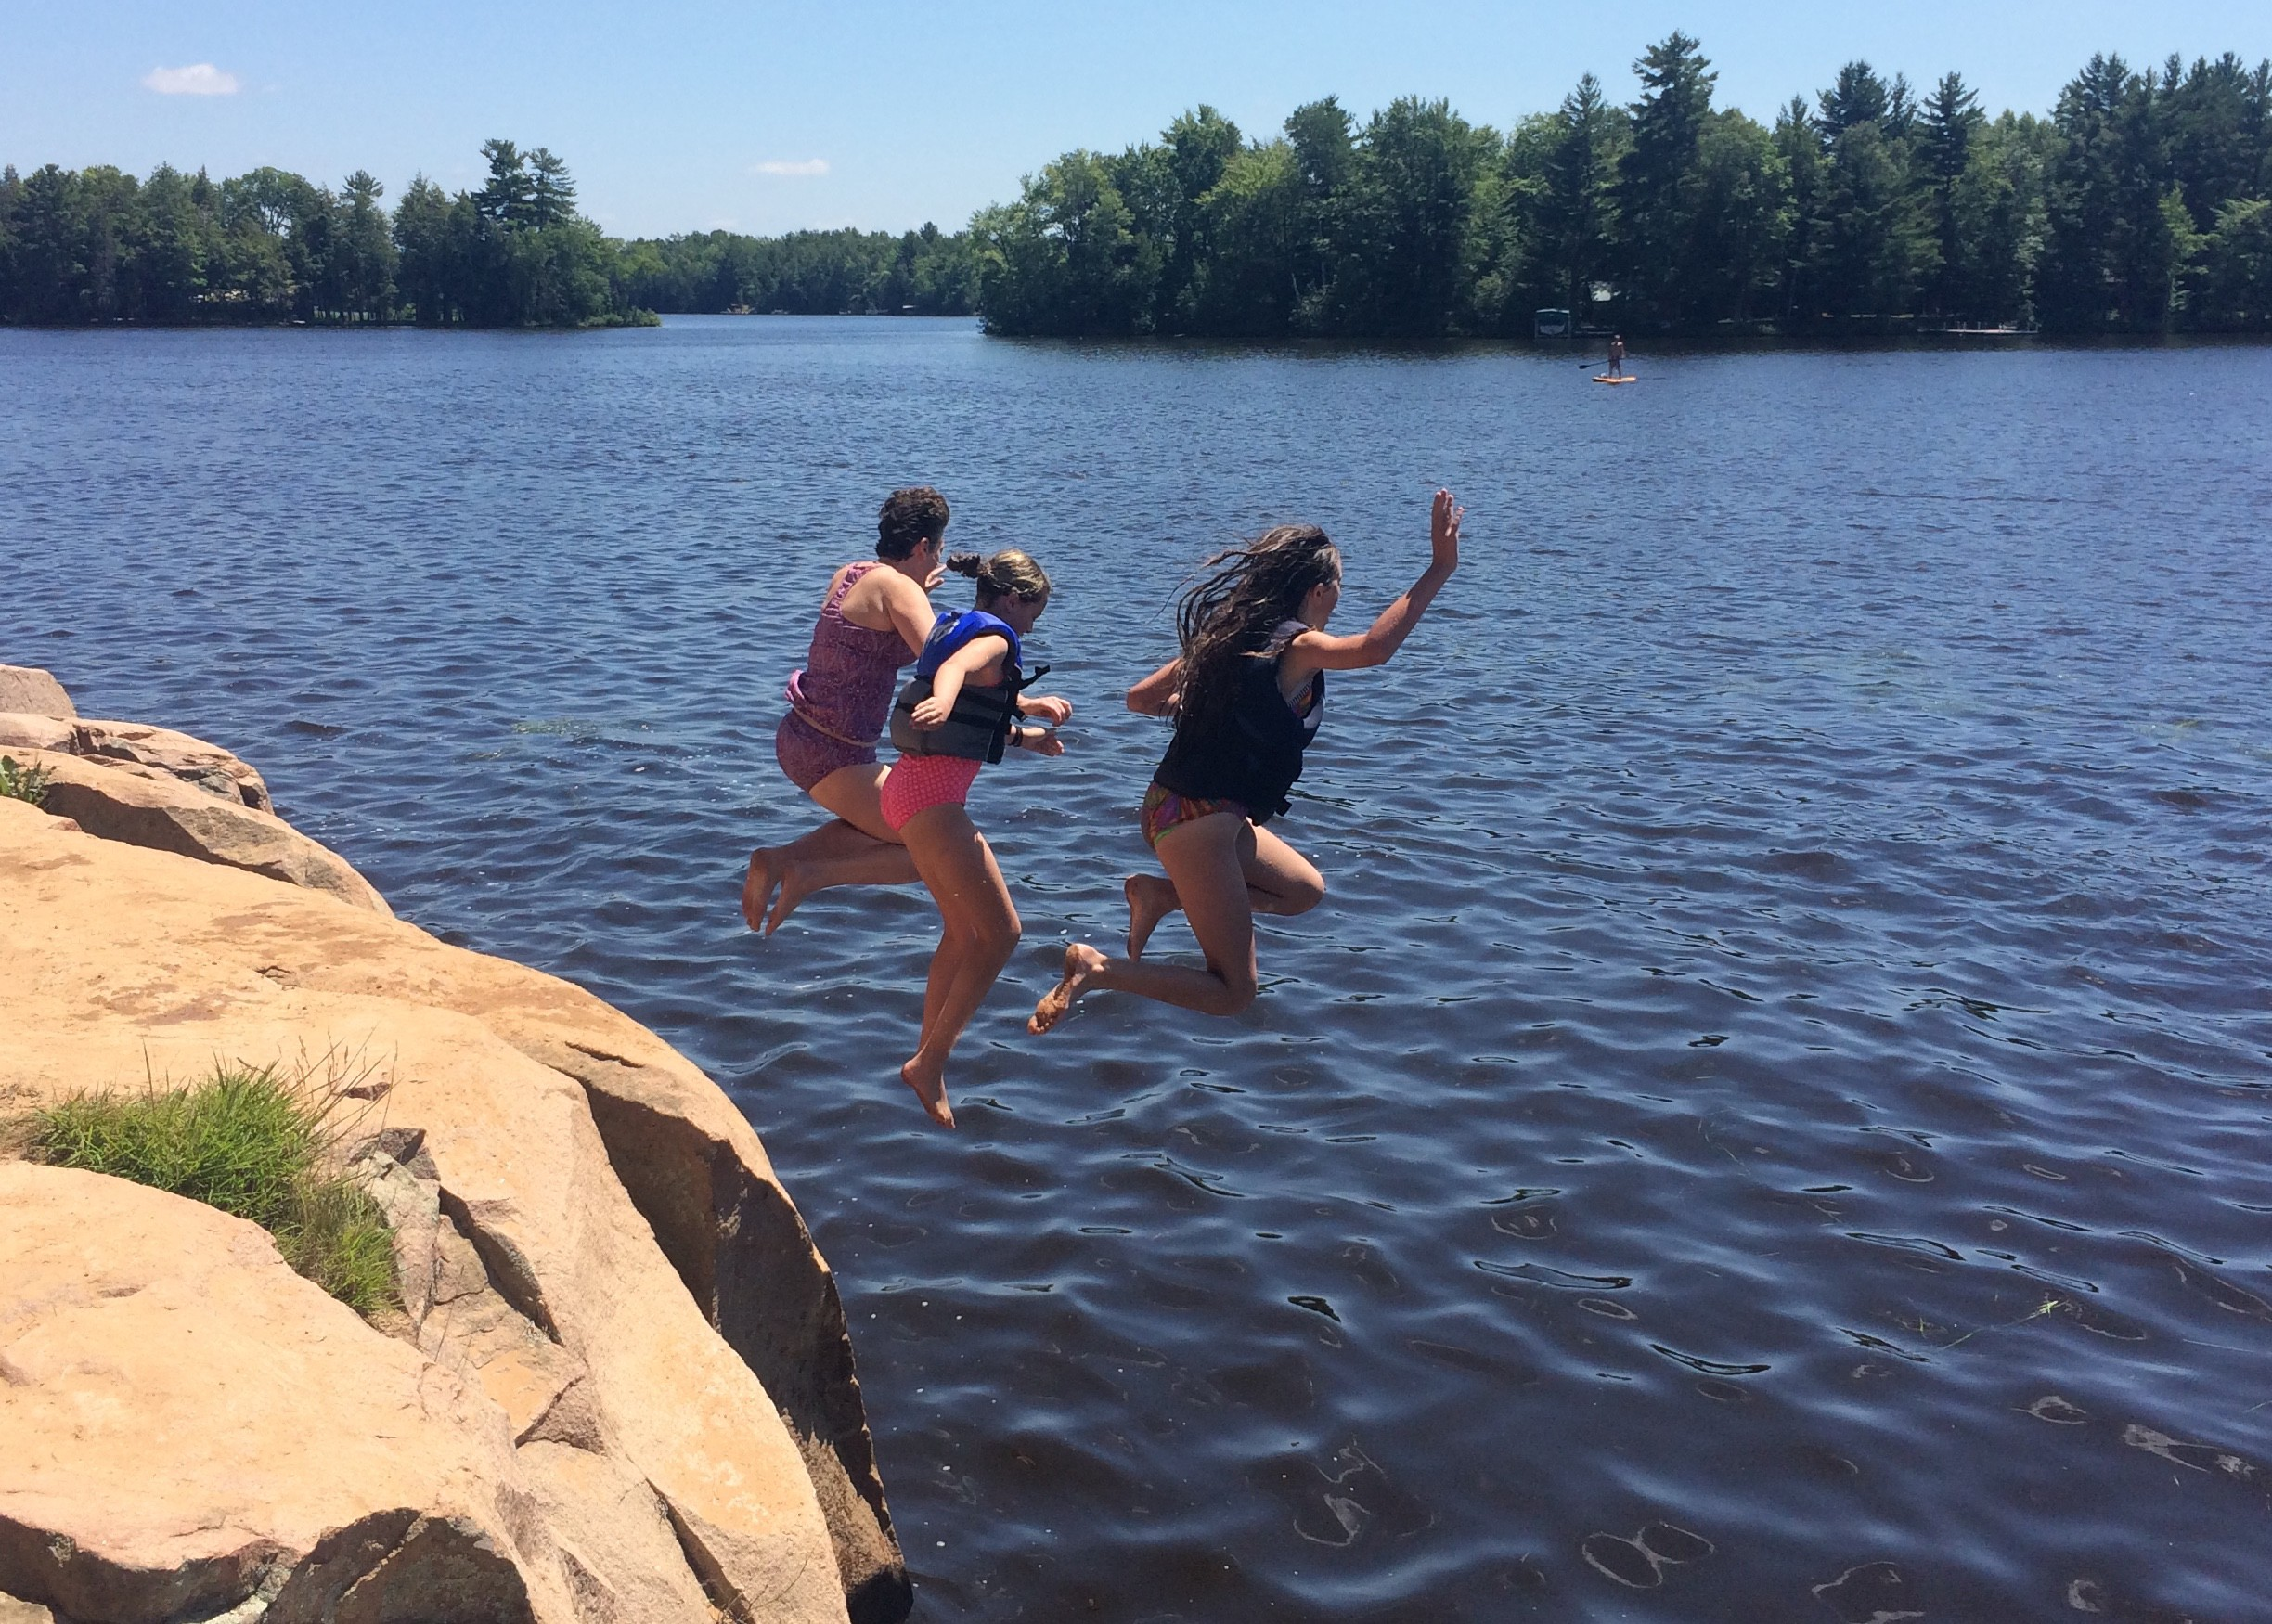 Three people in mid-air, jumping off a large rocky outcropping into a lake.